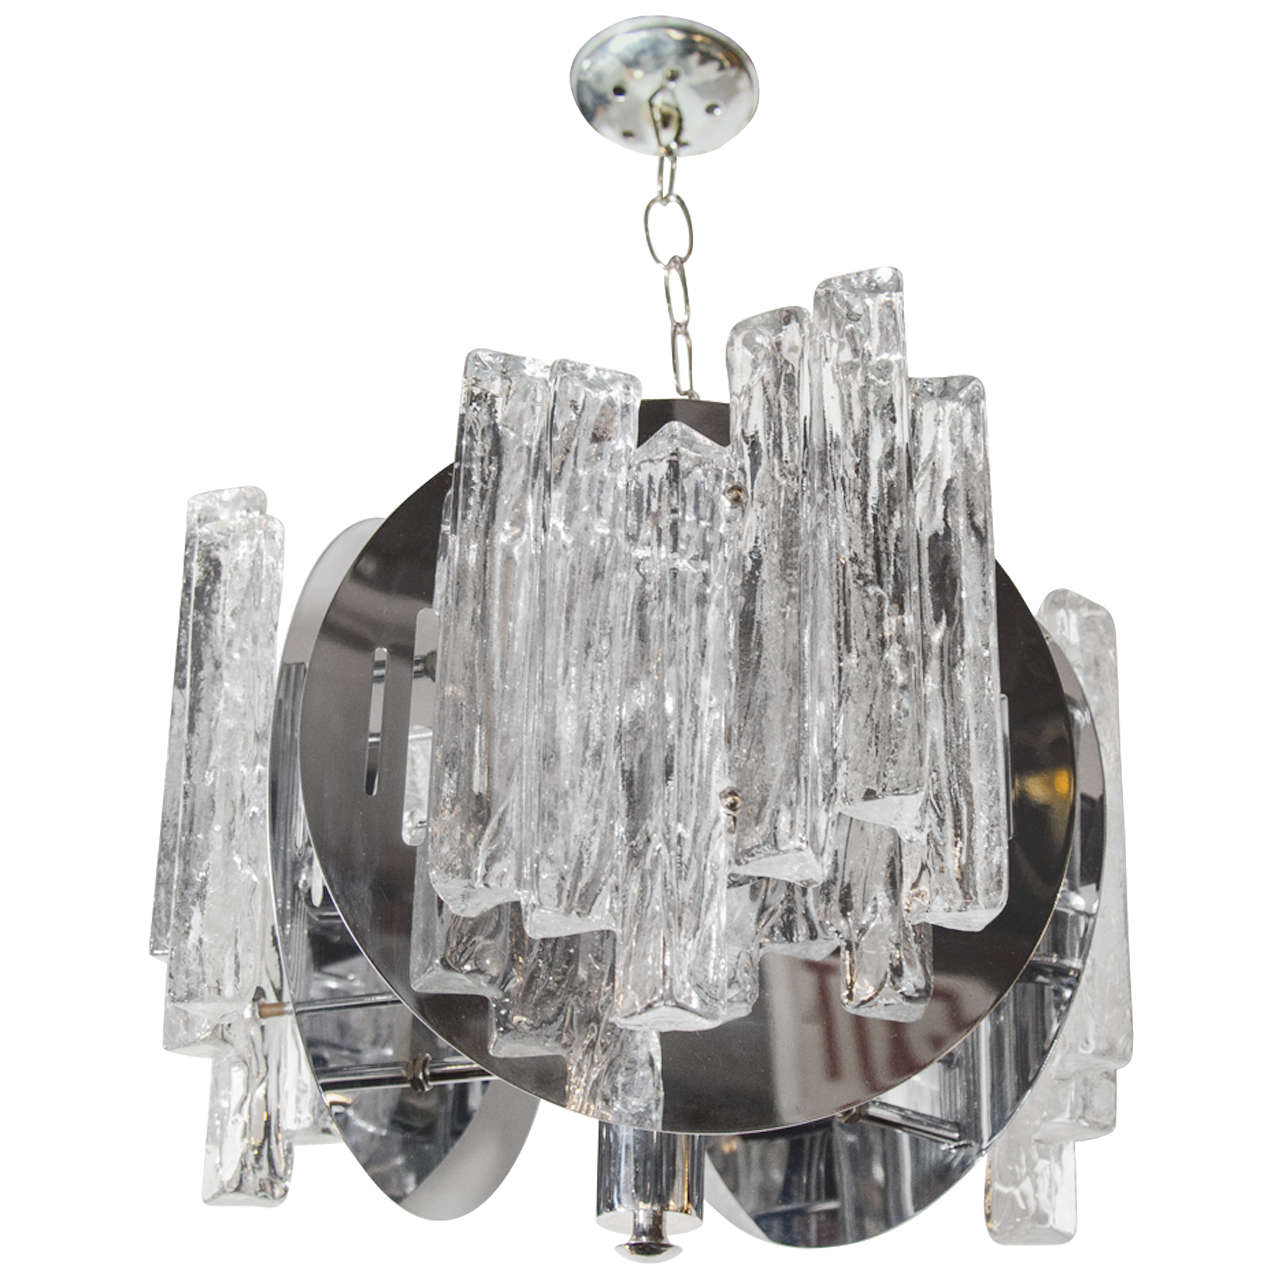 Mid-century modern trilateral chandelier with ice glass details. The fixture is comprised of a chrome frame with circular chrome discs. The discs have open slat details and are fitted with handblown textured ice glass. Adjustable chain height and